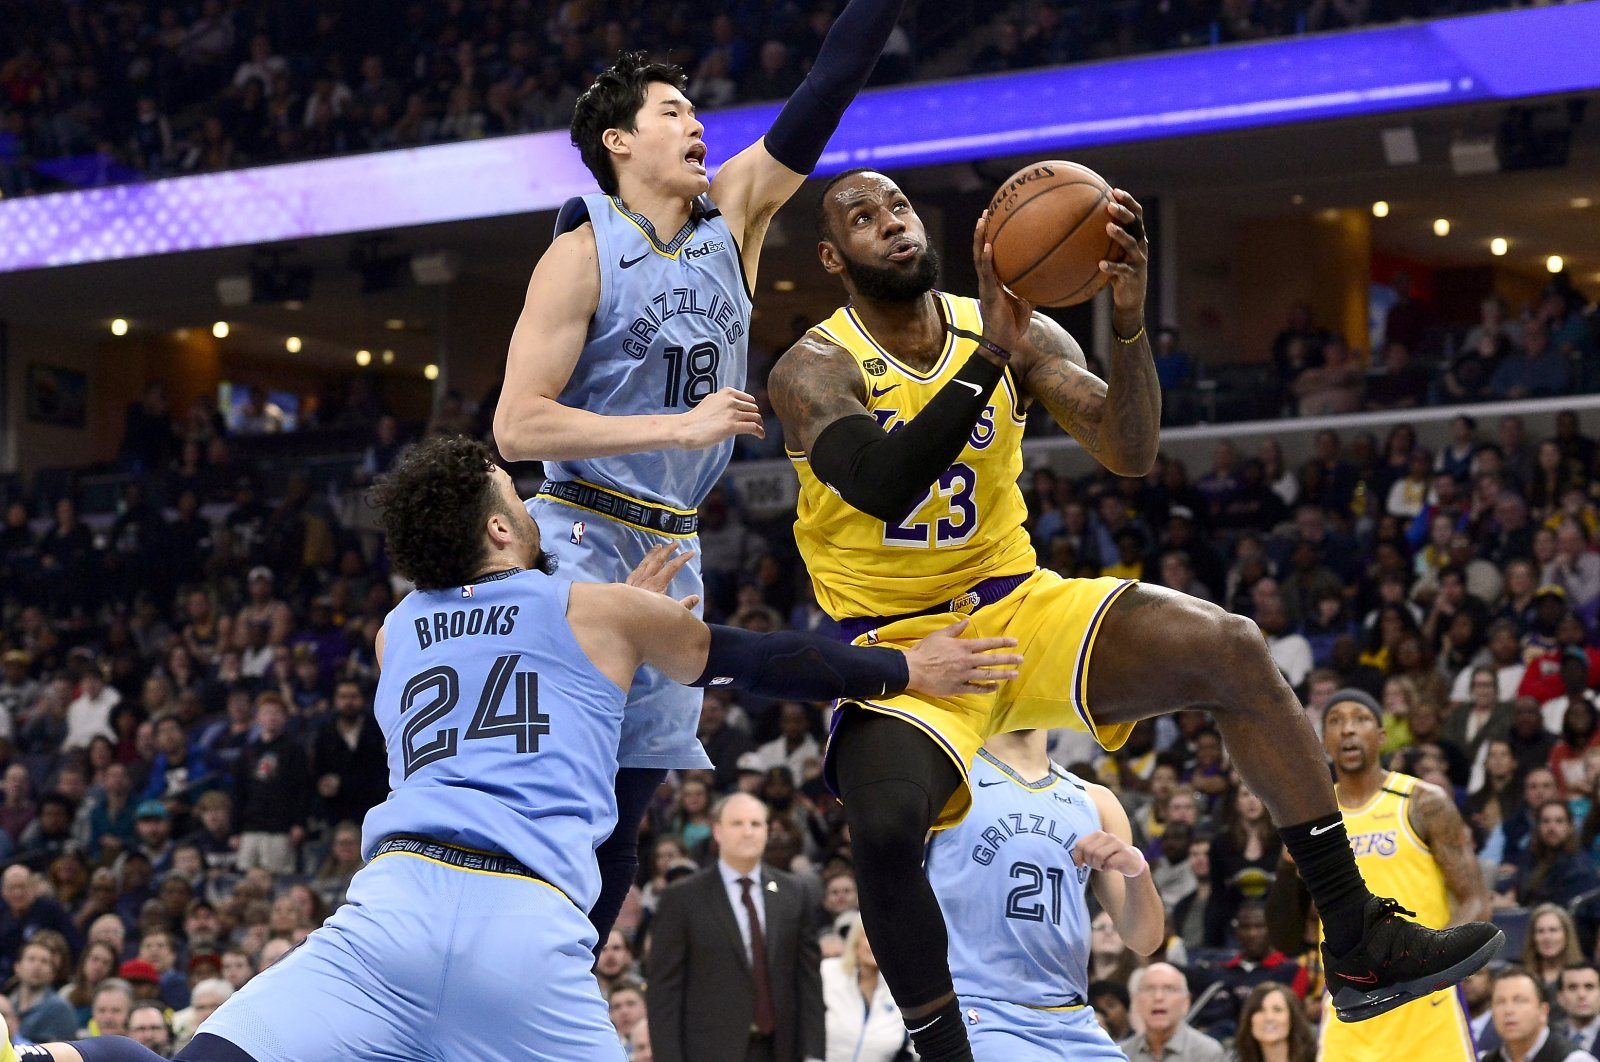 Los Angeles Lakers forward LeBron James (23) shoots ahead of Memphis Grizzlies guards Yuta Watanabe (18) and Dillon Brooks (24) in the second half of an NBA basketball game in Memphis, Tennessee, U.S., Feb. 29, 2020. (AP Photo)